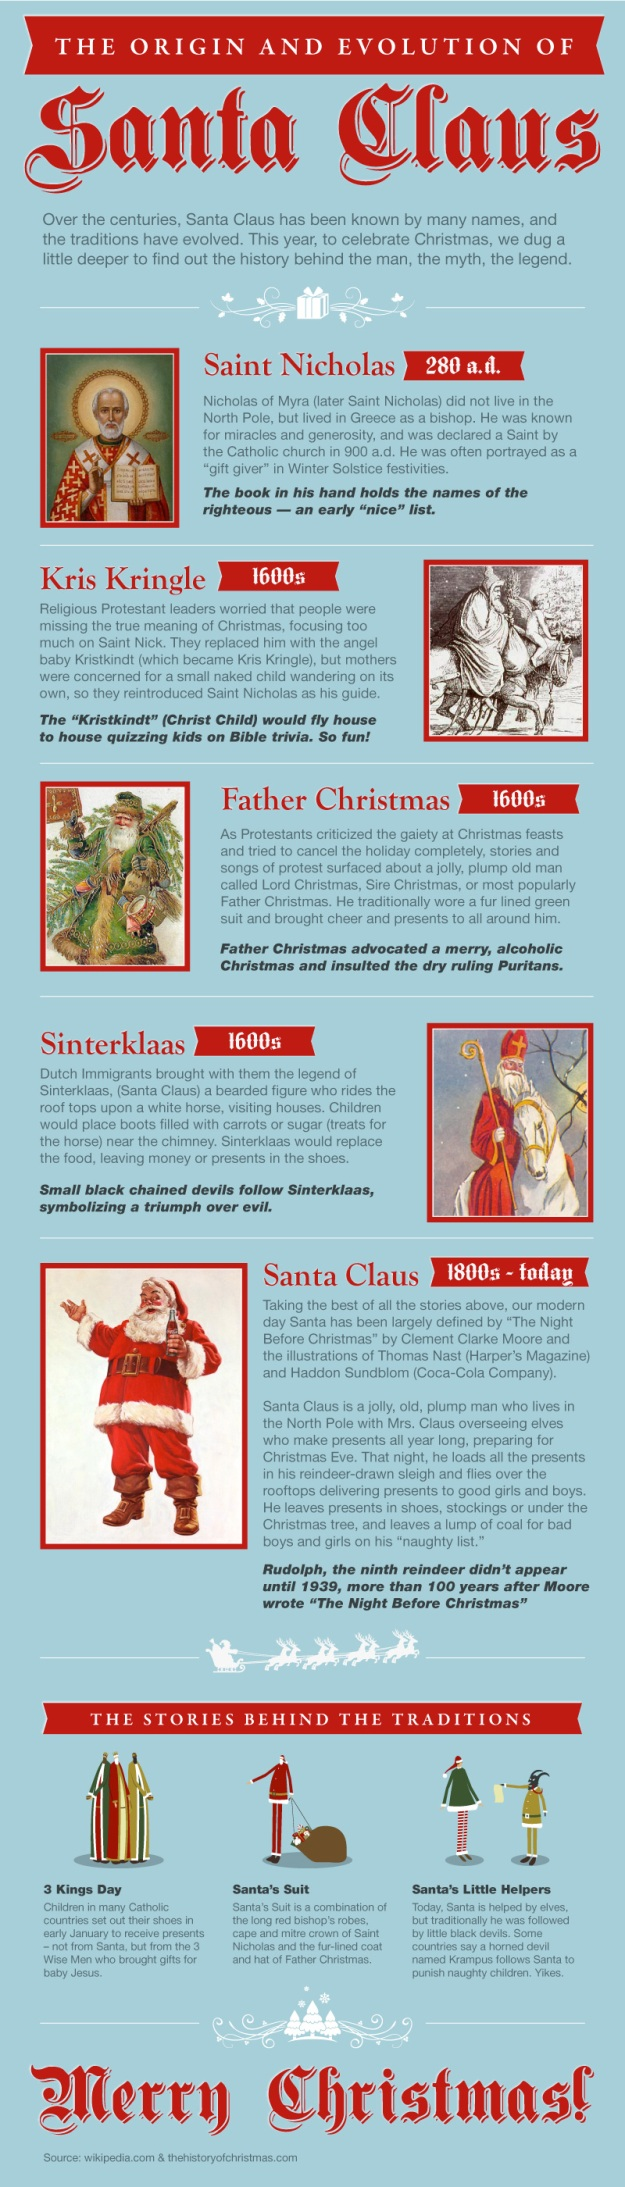 The Origin of Santa